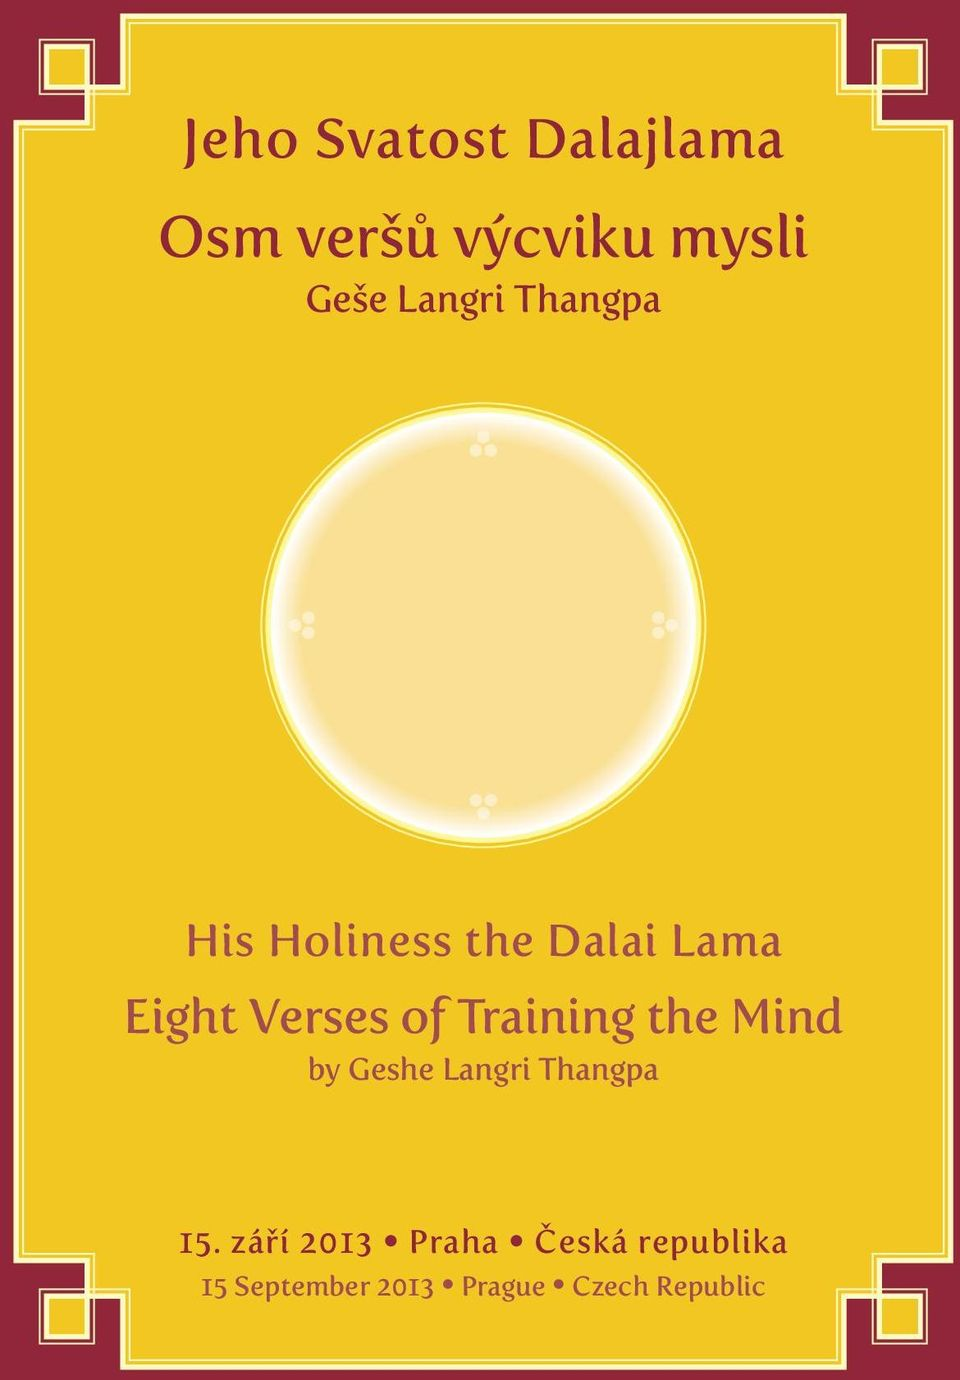 of Training the Mind by Geshe Langri Thangpa 15.